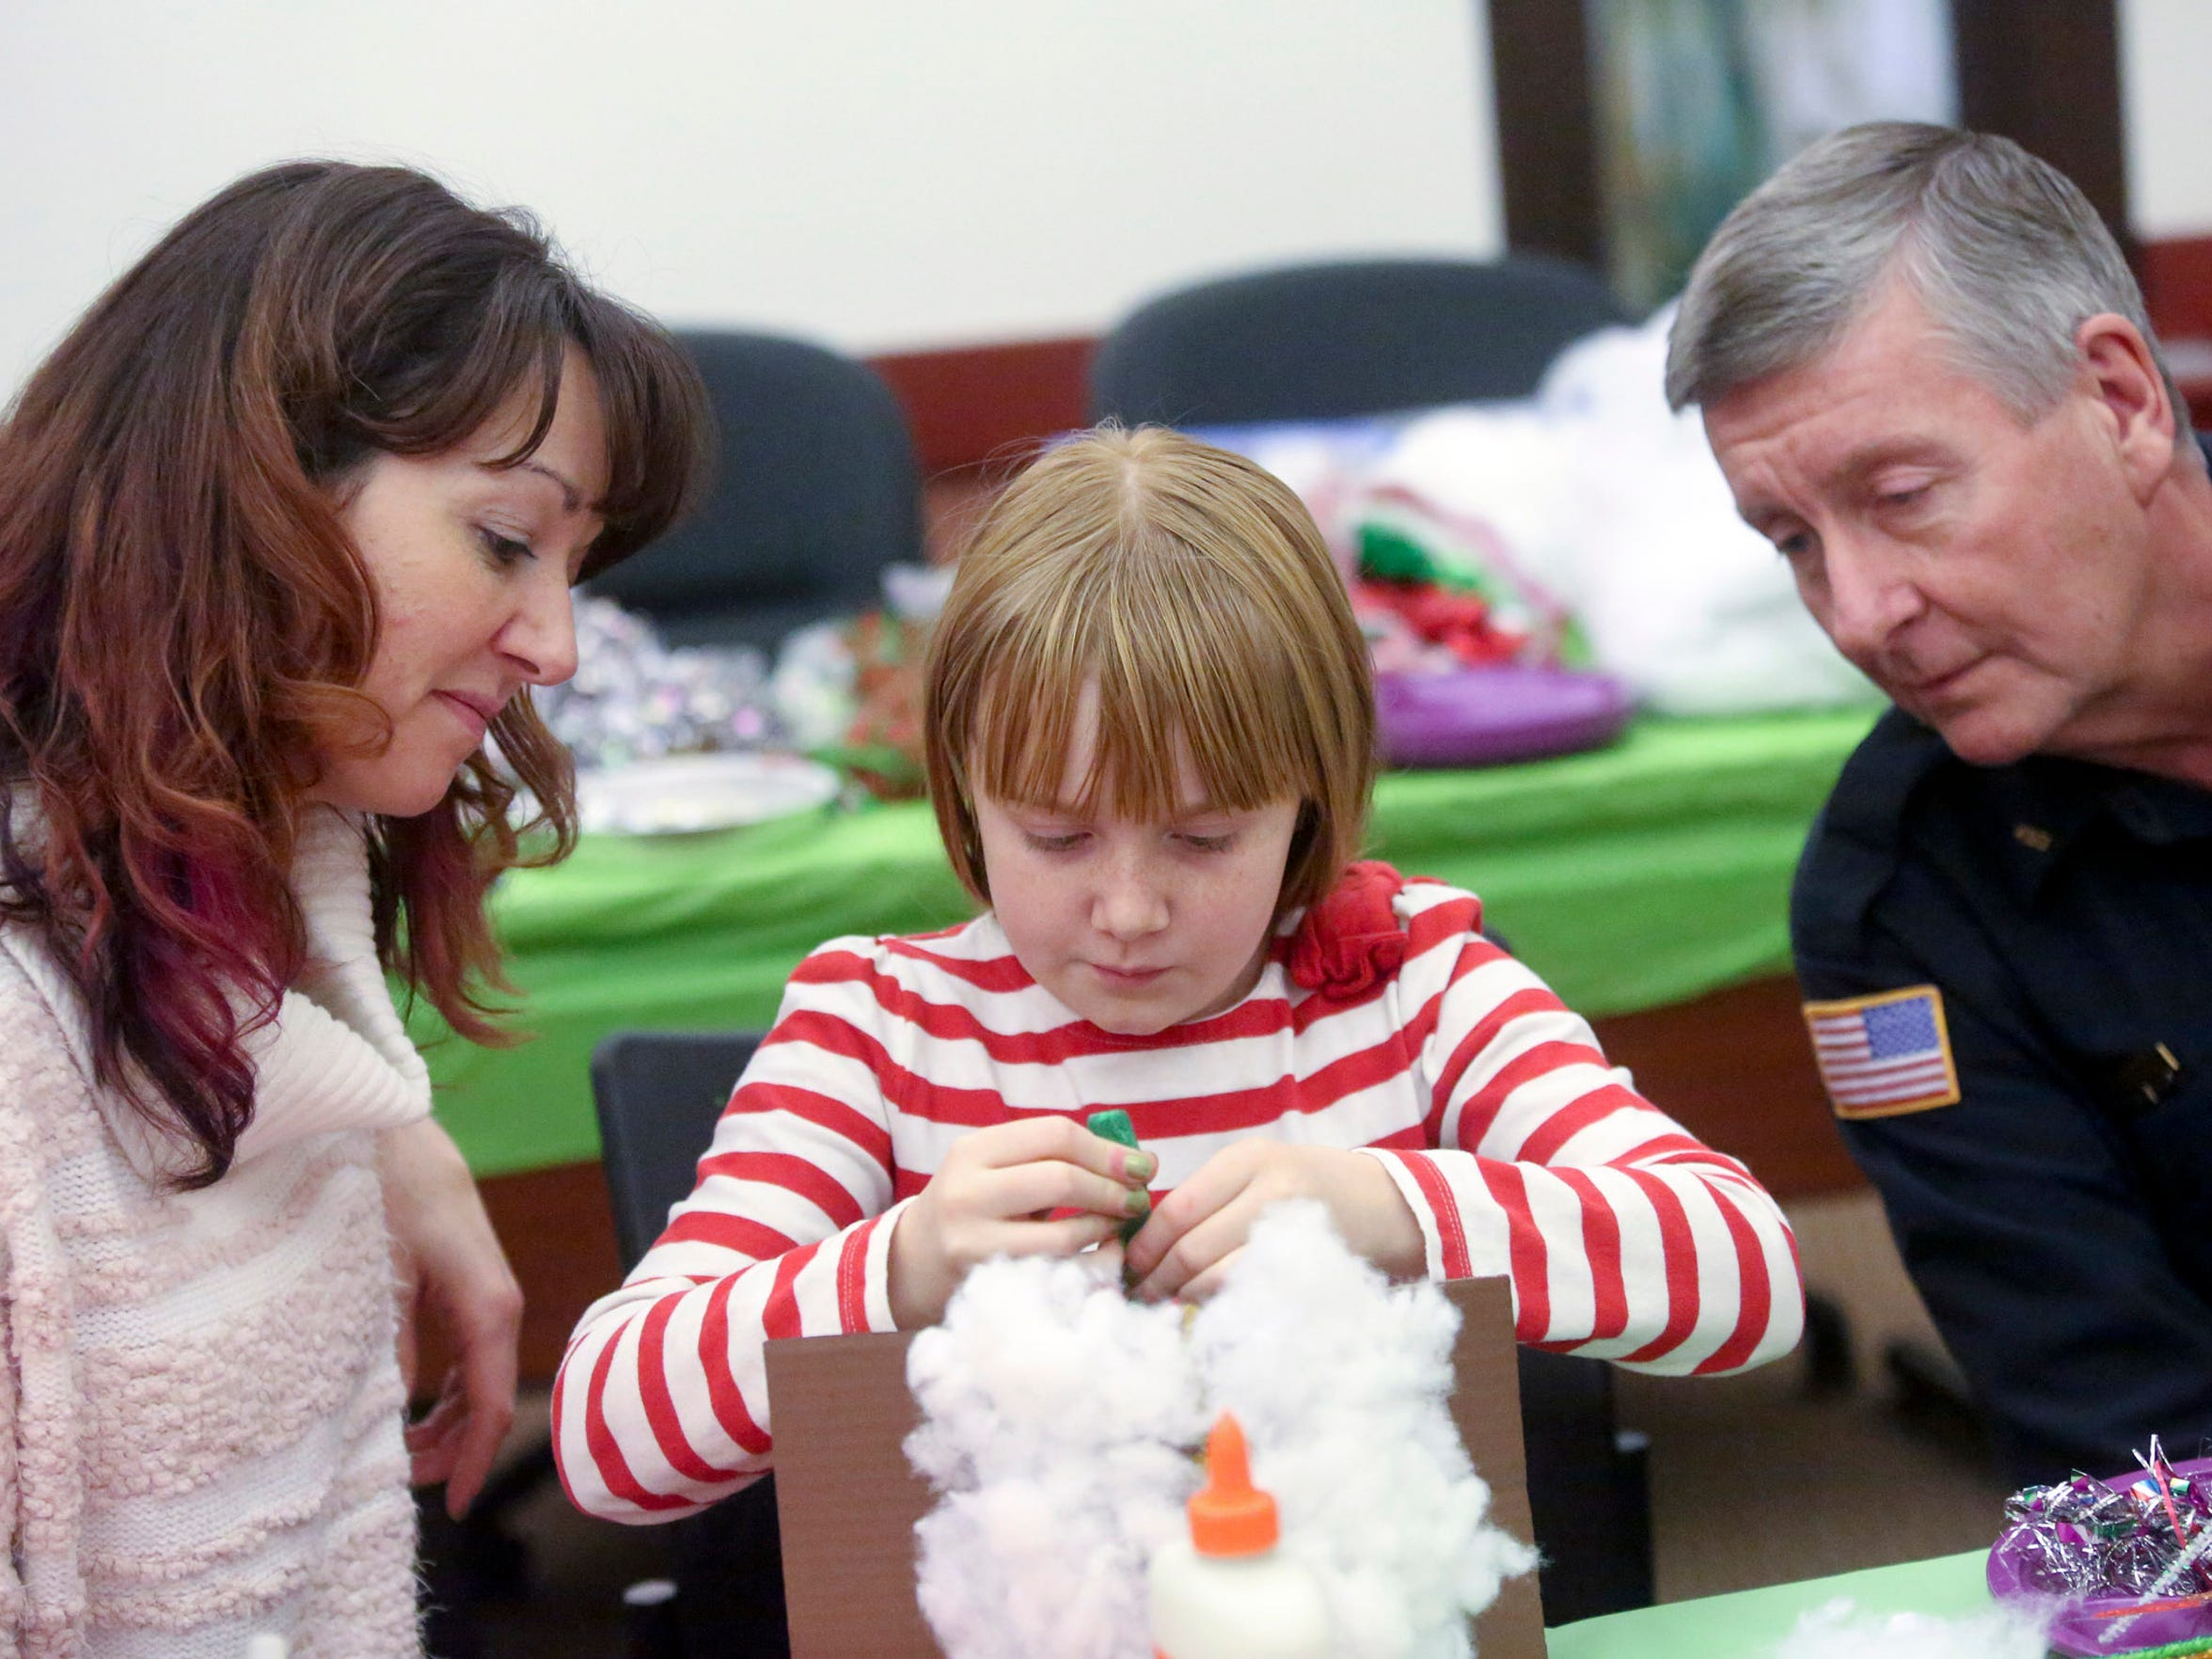 Ava Lenz works on her gingerbread house under the eyes of her mother, Hilary Prokop, and then-Pewaukee Police Chief Tim Otto during a past 12 Days of Christmas. This year's 12 Days event will run from Nov. 29-Dec. 10.